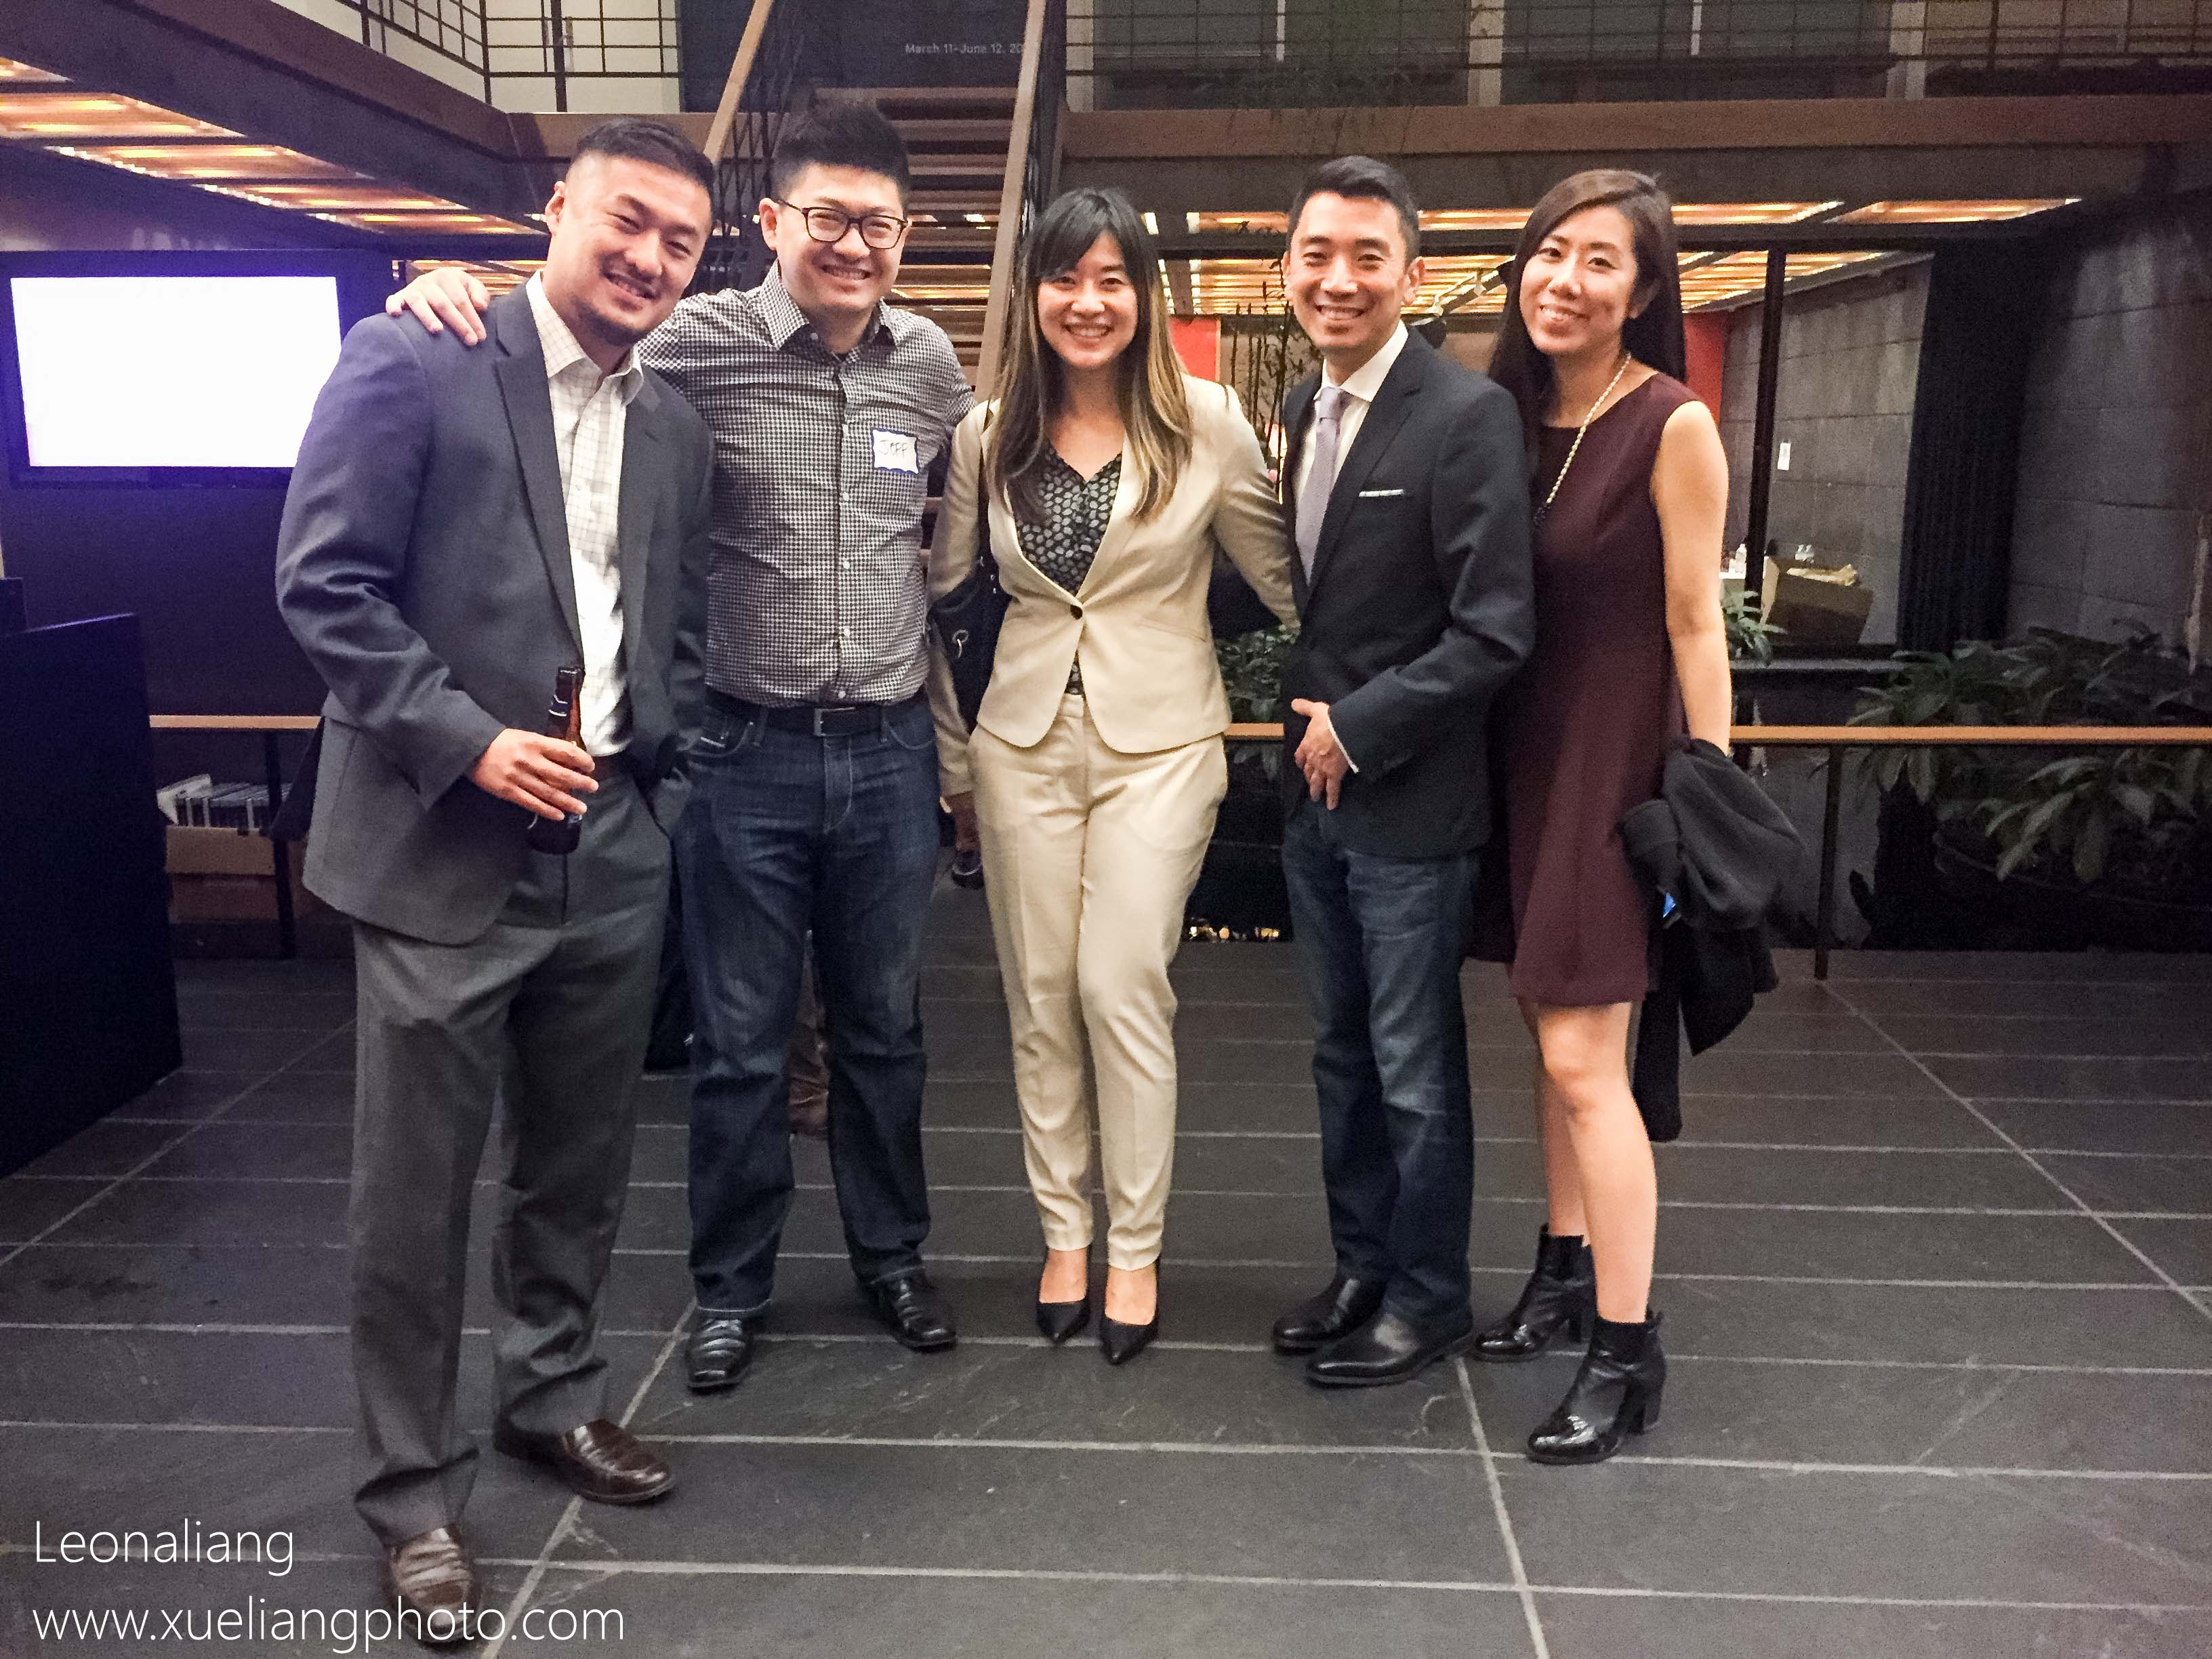 Photo by Xue Liang National Association of Asian American Professionals, New York (NAAAP-NY) along with...